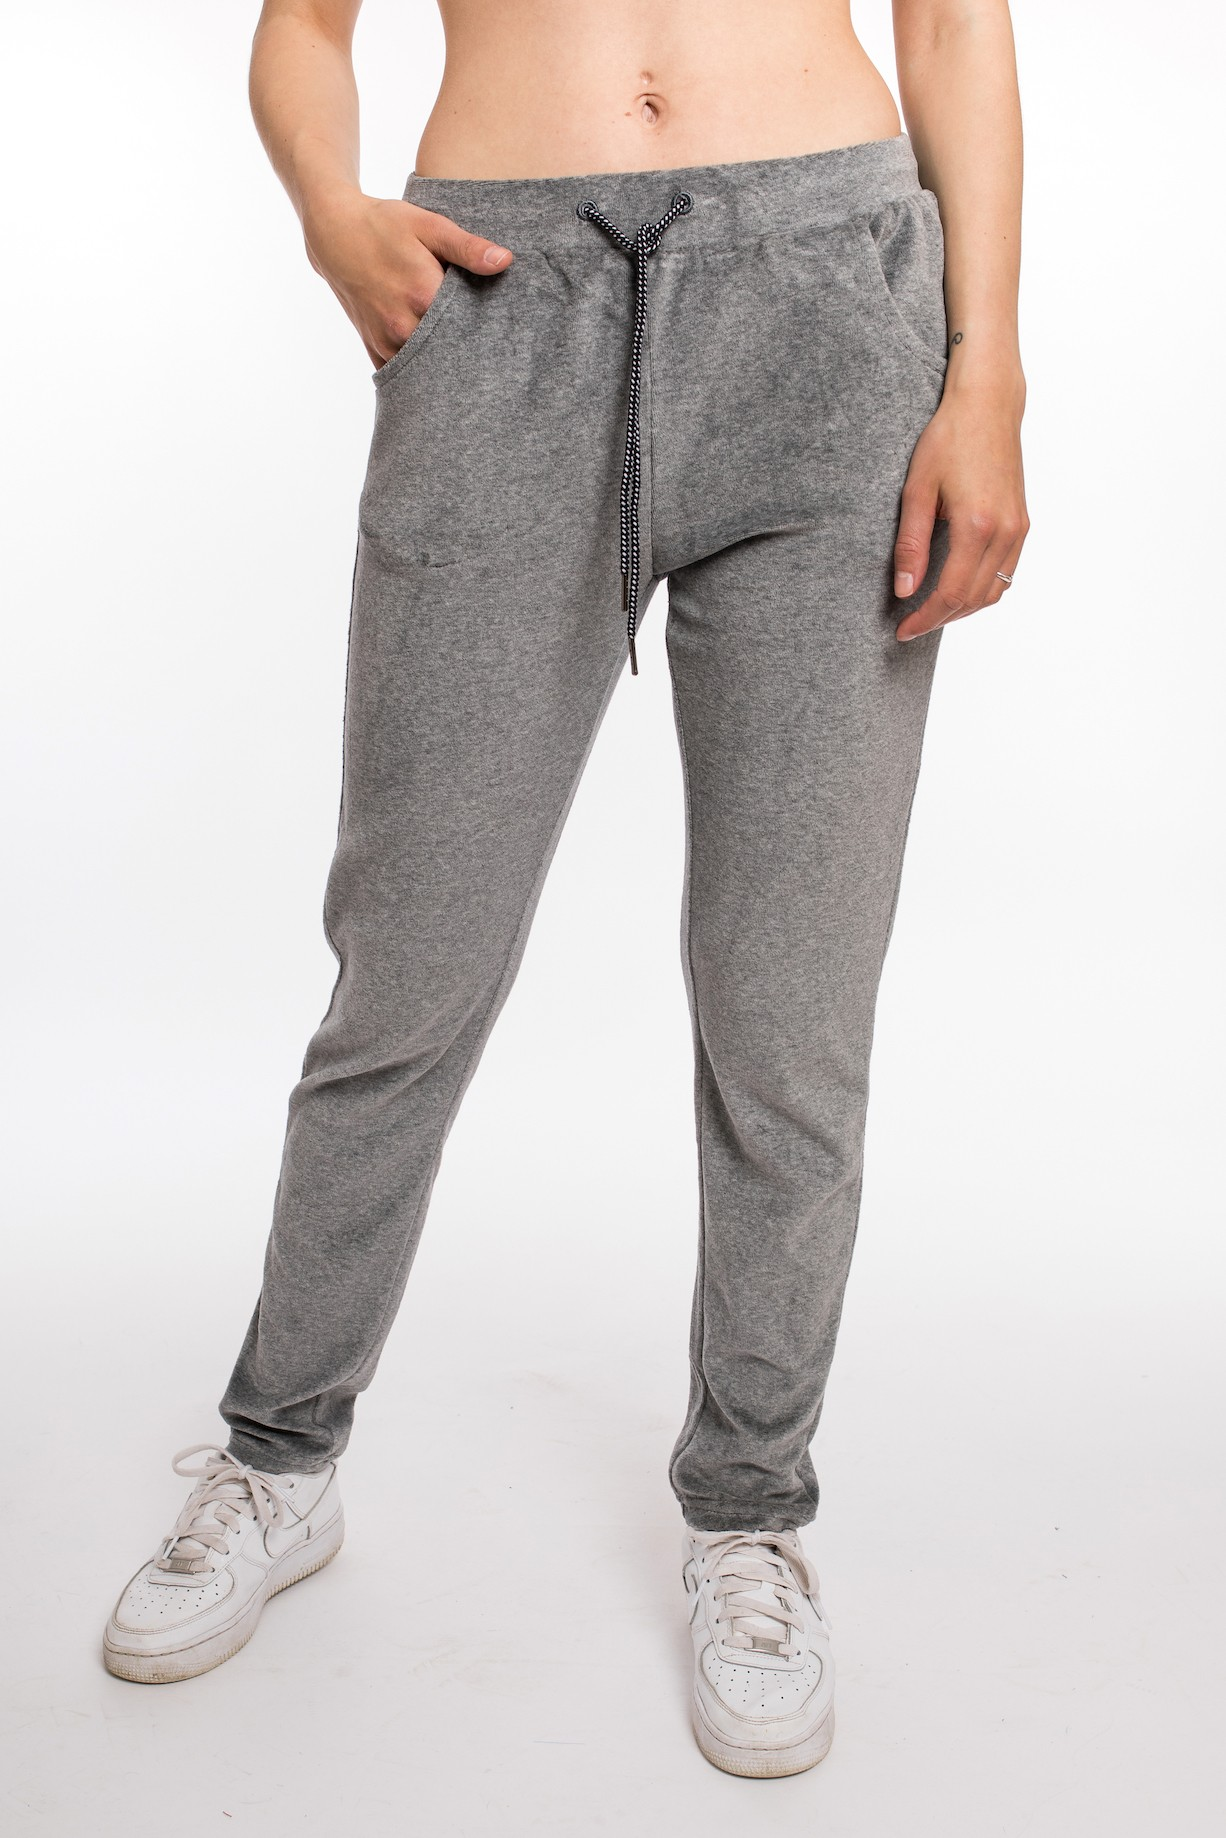 Loungehose und Relaxhose Damen Linea Primero MONICA MEADOWS Pants Women